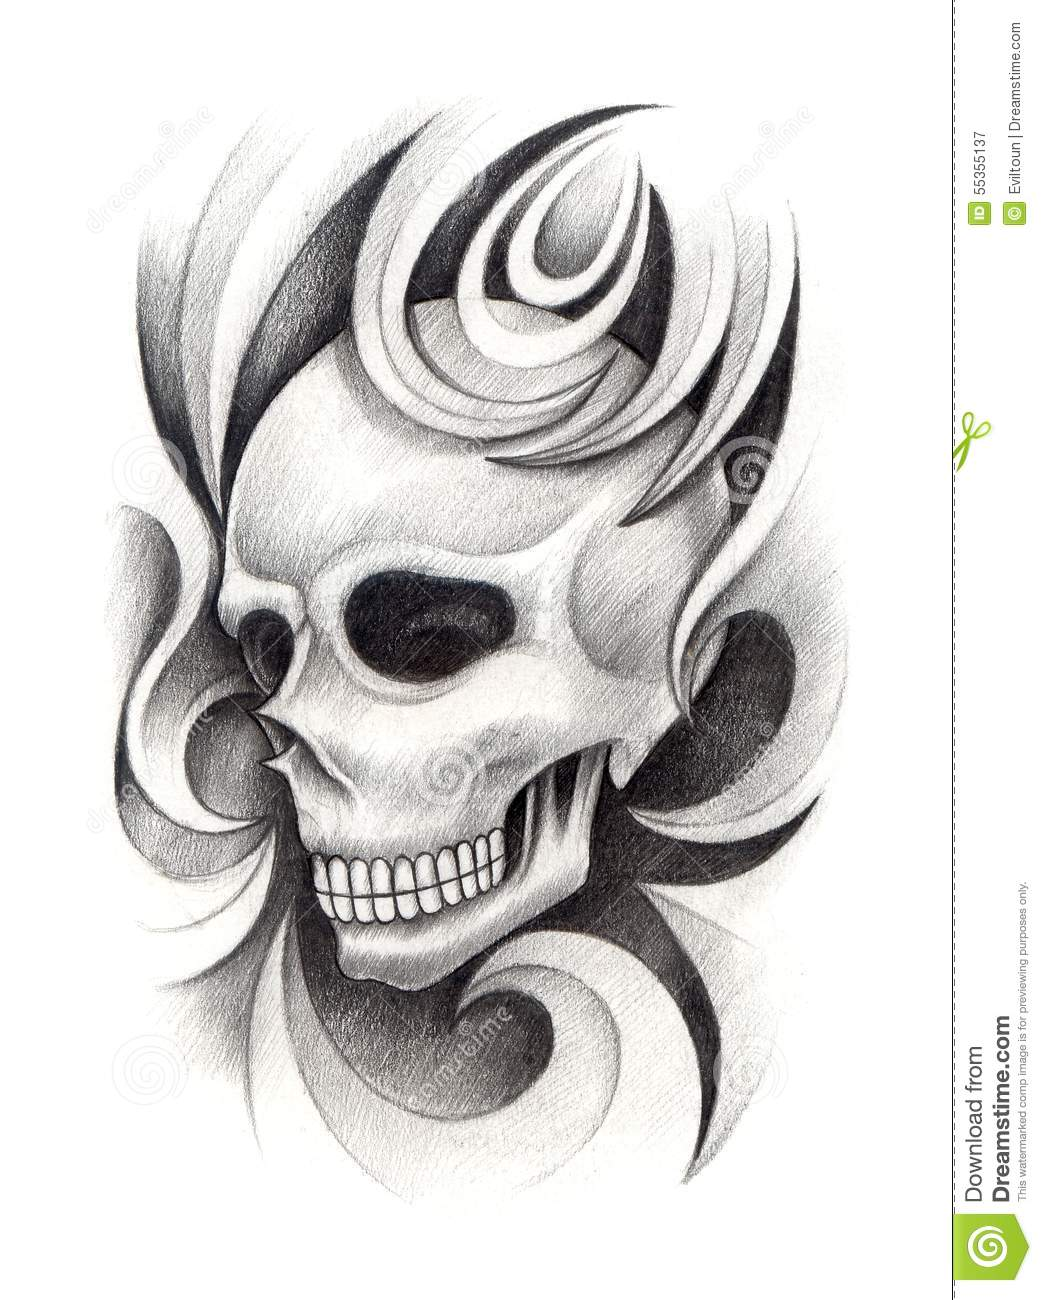 skull art tattoo stock illustration illustration of graphic 55355137. Black Bedroom Furniture Sets. Home Design Ideas